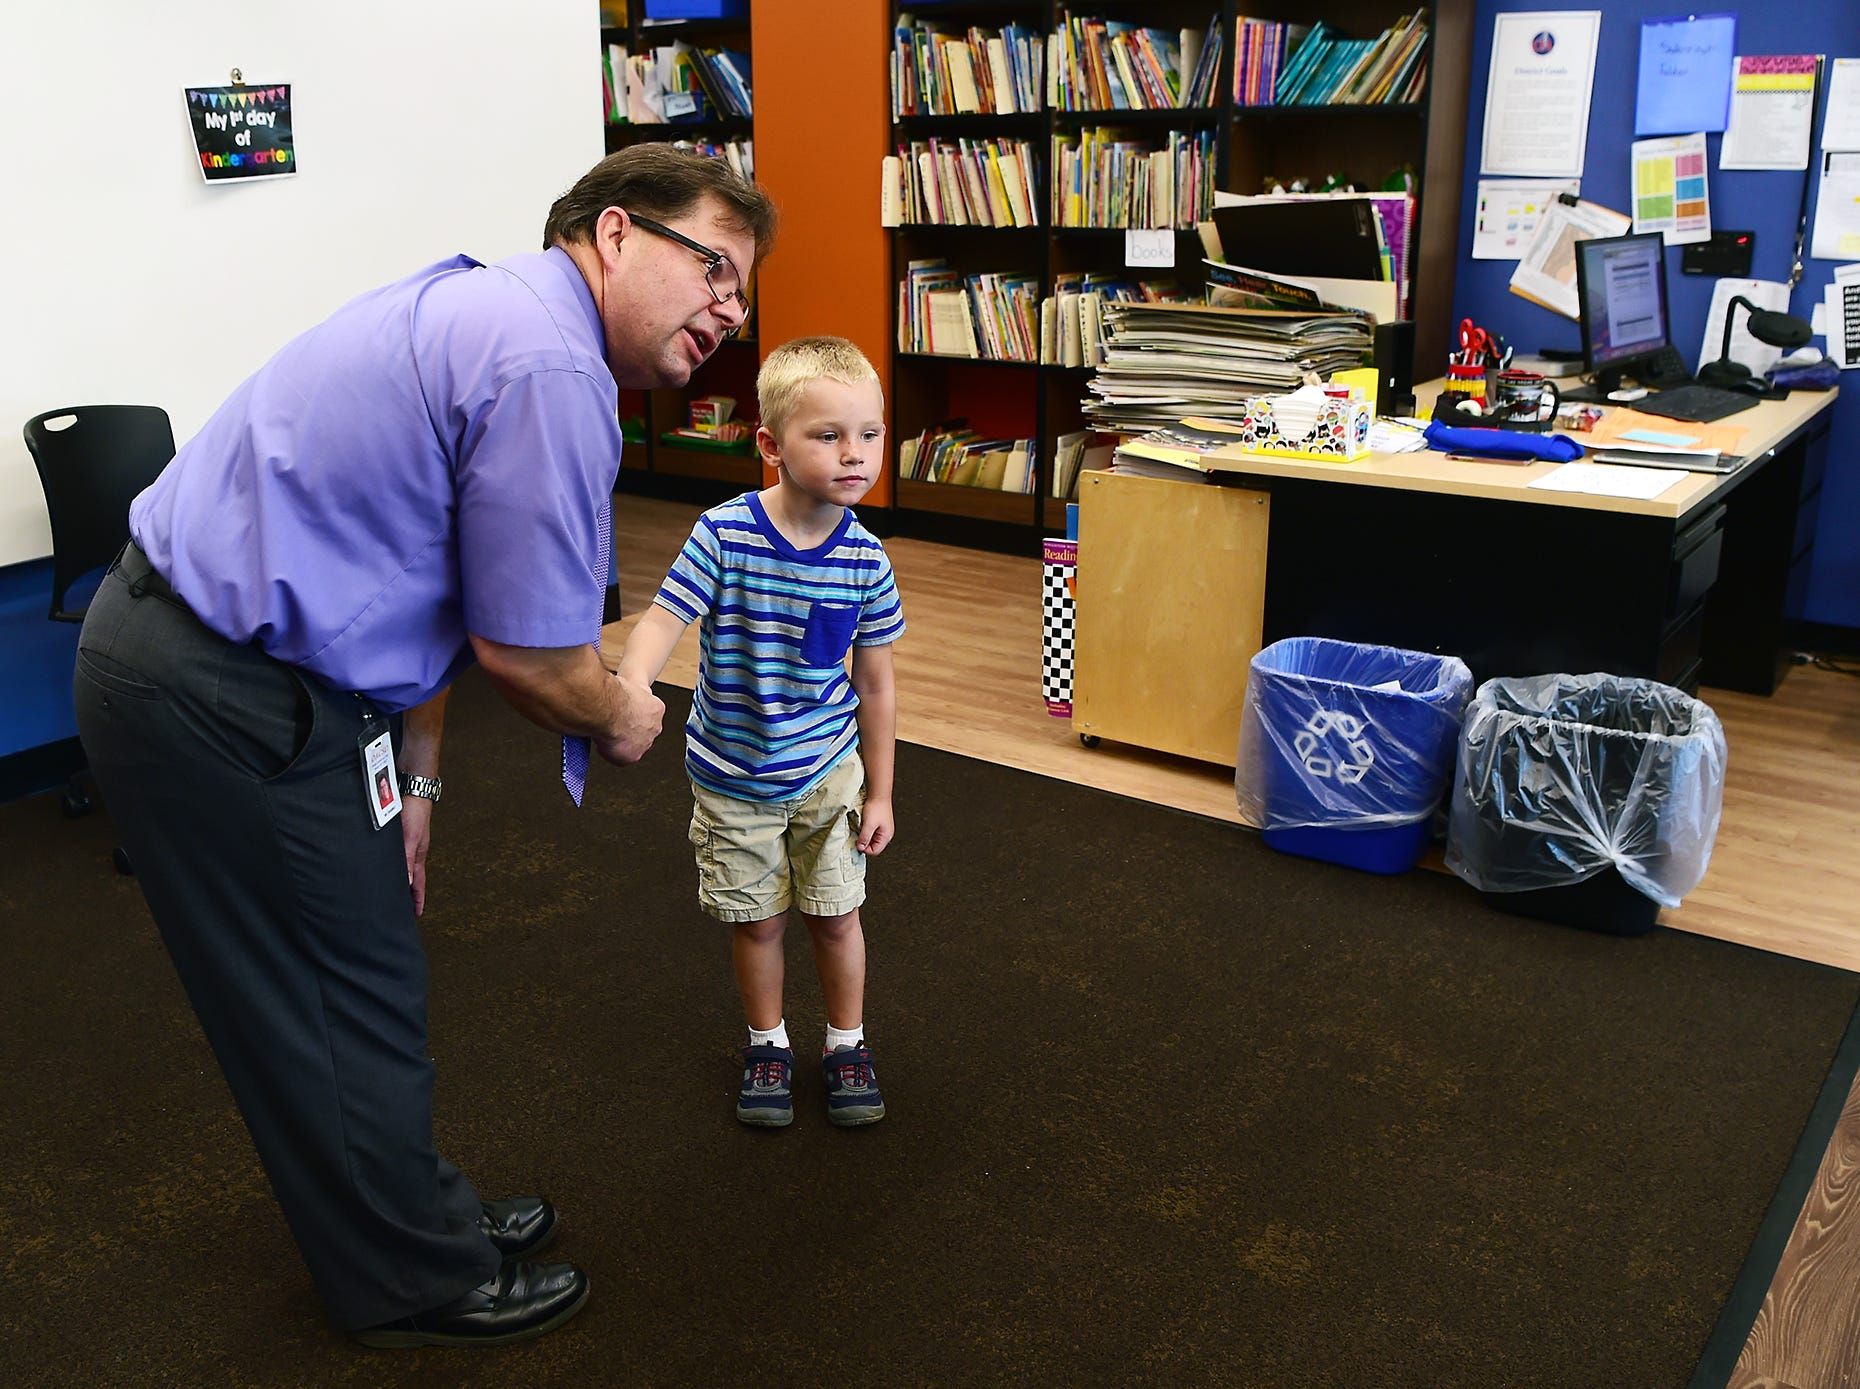 Mr. Joseph Shambo, a kindergarten teacher, talks with kindergarten student Greyson Rieg during the first day of classes at Owego Elementary School, Owego, Wednesday, September 5, 2018.